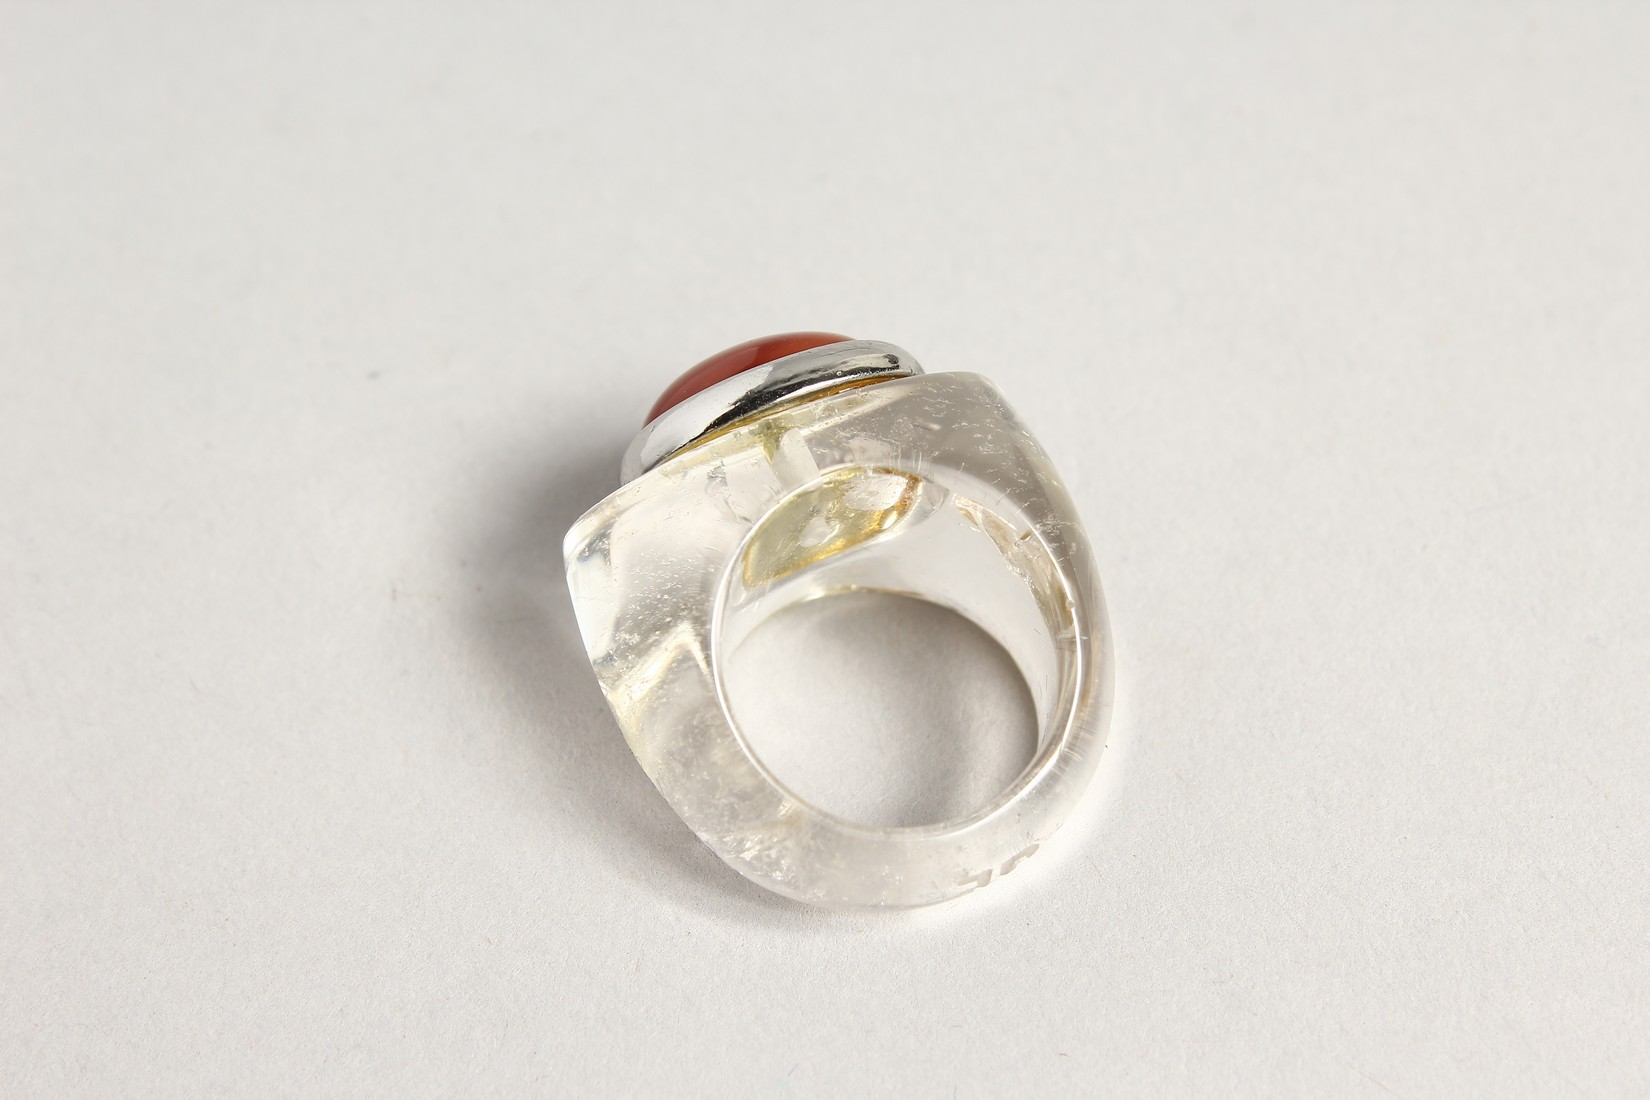 A RED STONE DESIGNER RING - Image 2 of 2